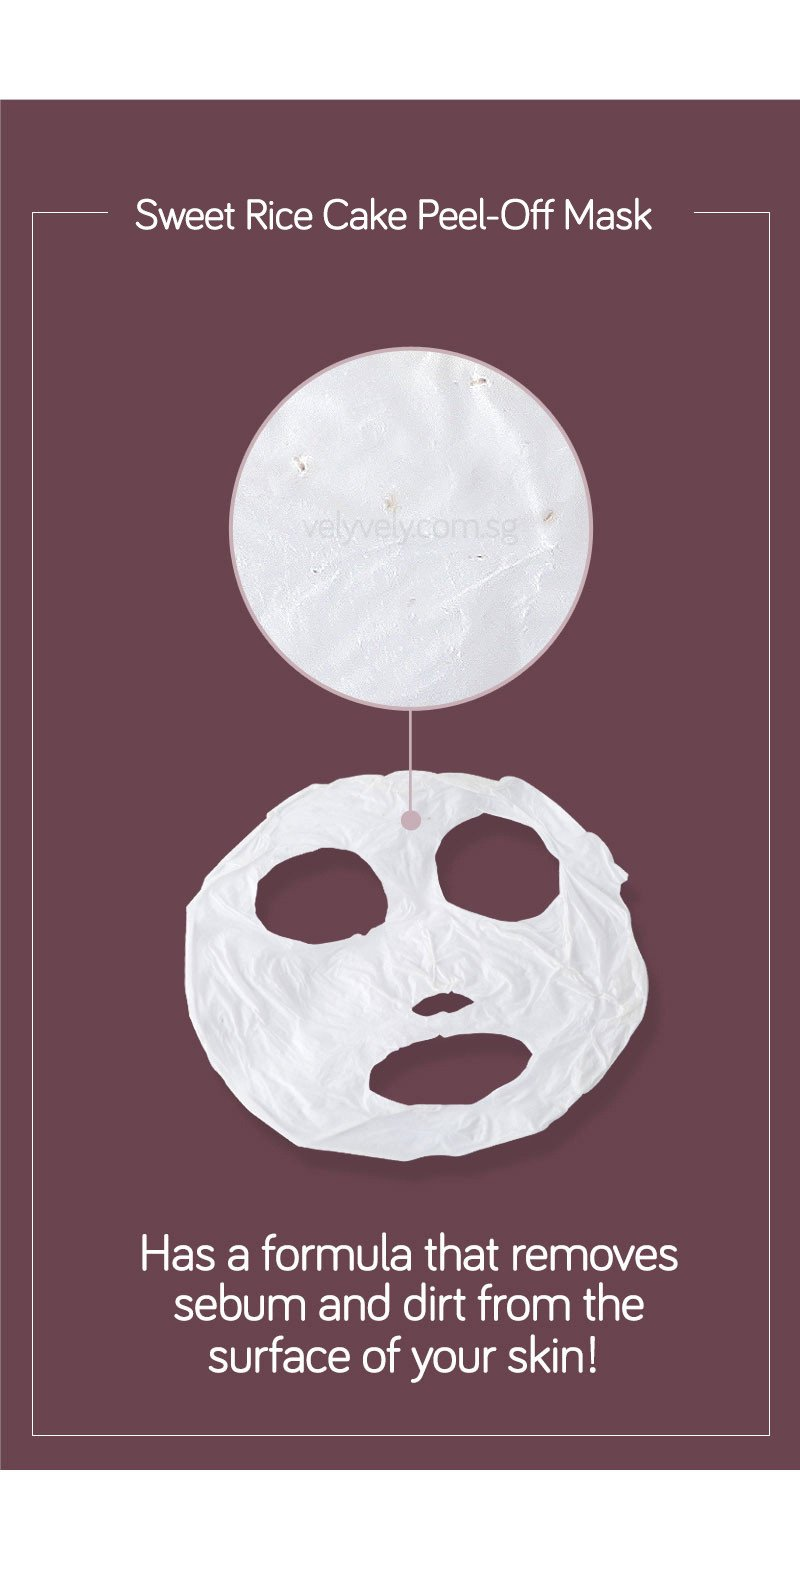 Korea's Cosmetic Brand, Vely Vely Sweet Rice Cake Peel-Off Mask removes sebum and dirt from skin!